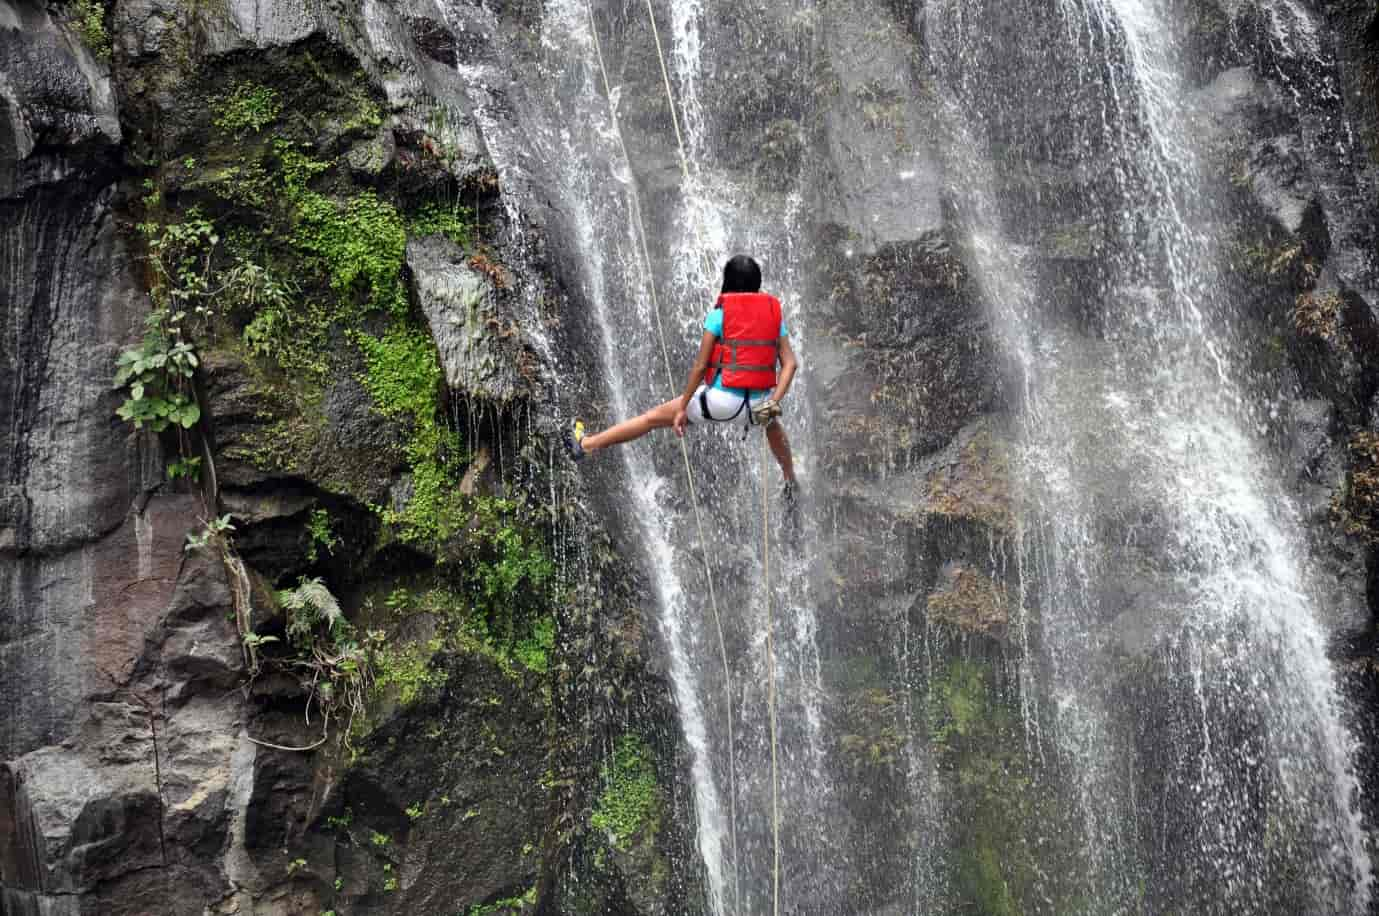 Chelavara-falls-rappelling-gives-you-an-opportunity-to-closely-admire-and-enjoy-the-waterfall